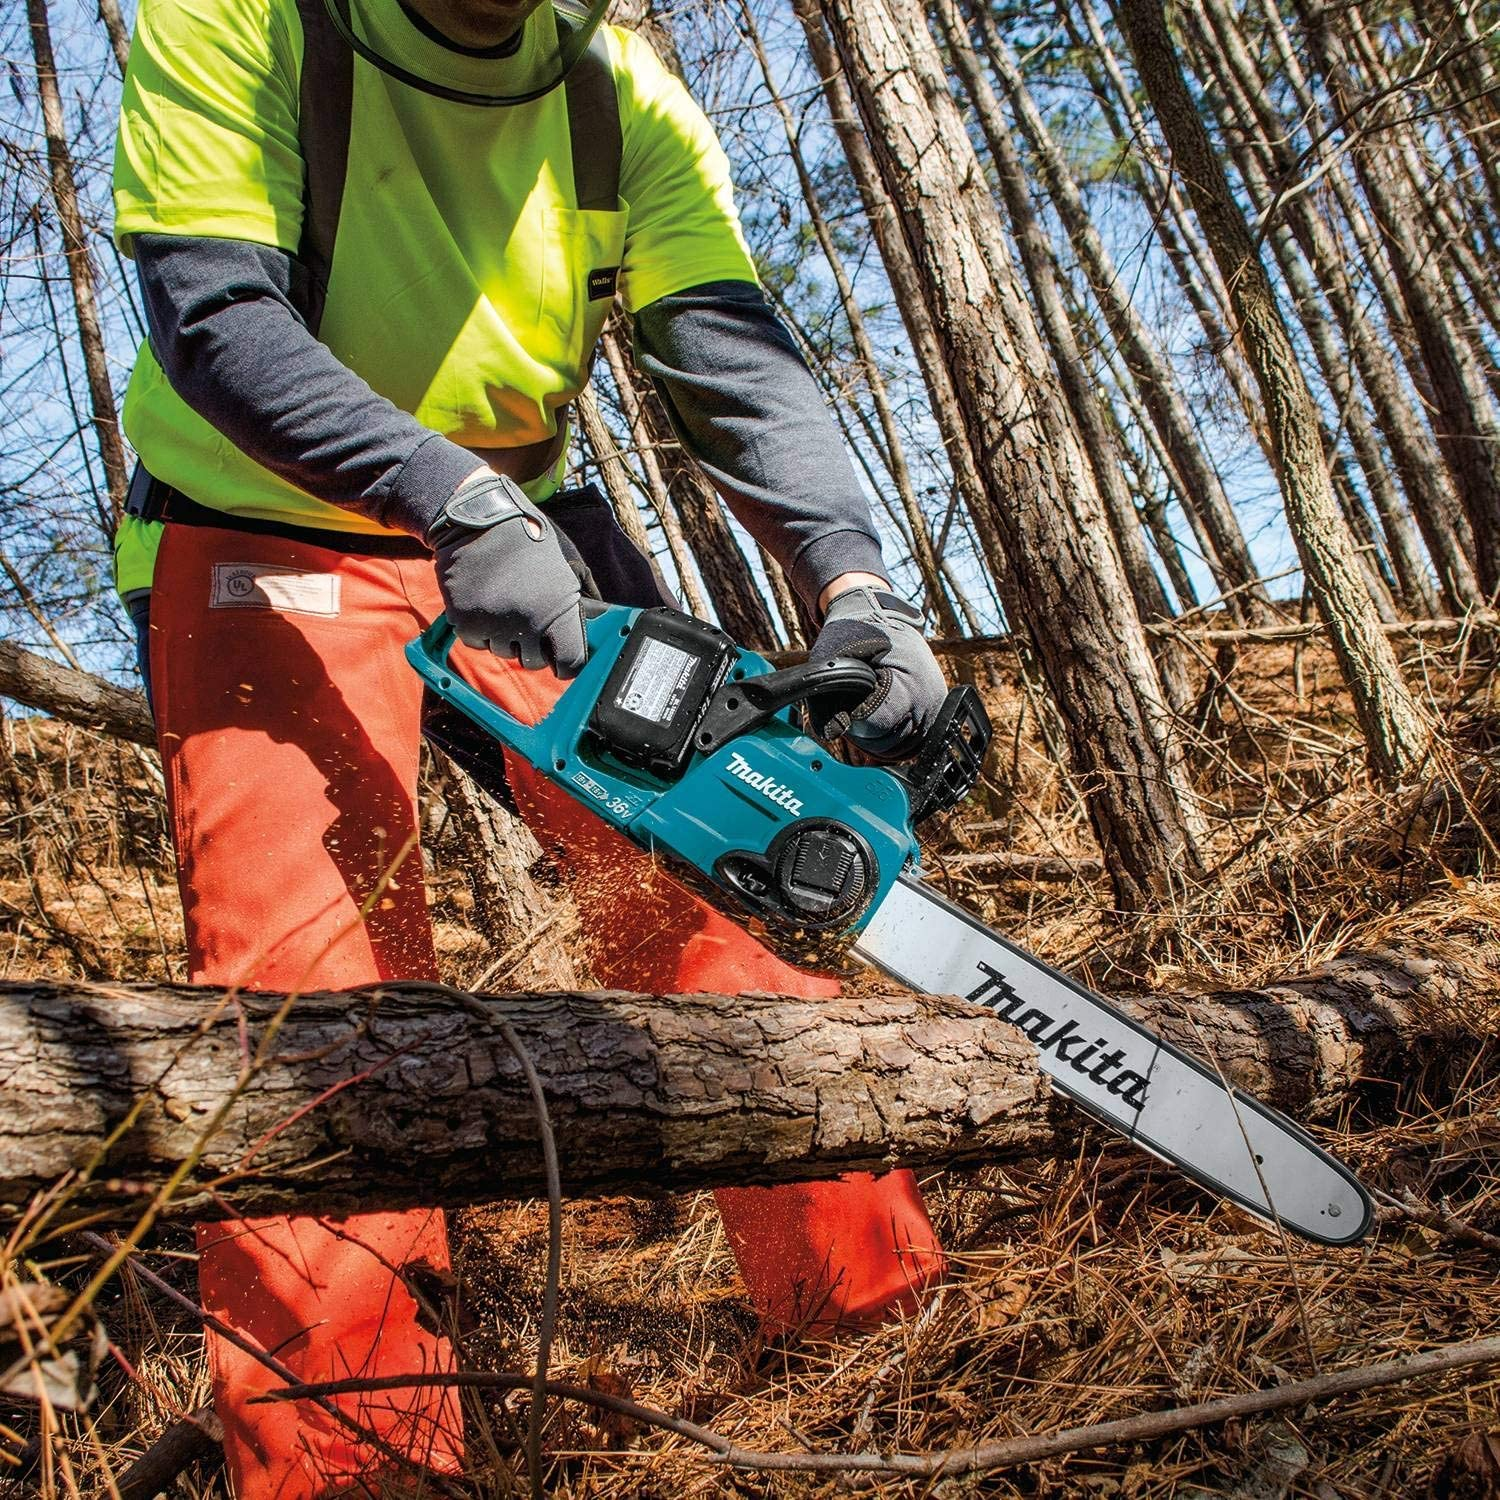 Best Cordless Chainsaw in 2020: Reviews & Buying Guide 7